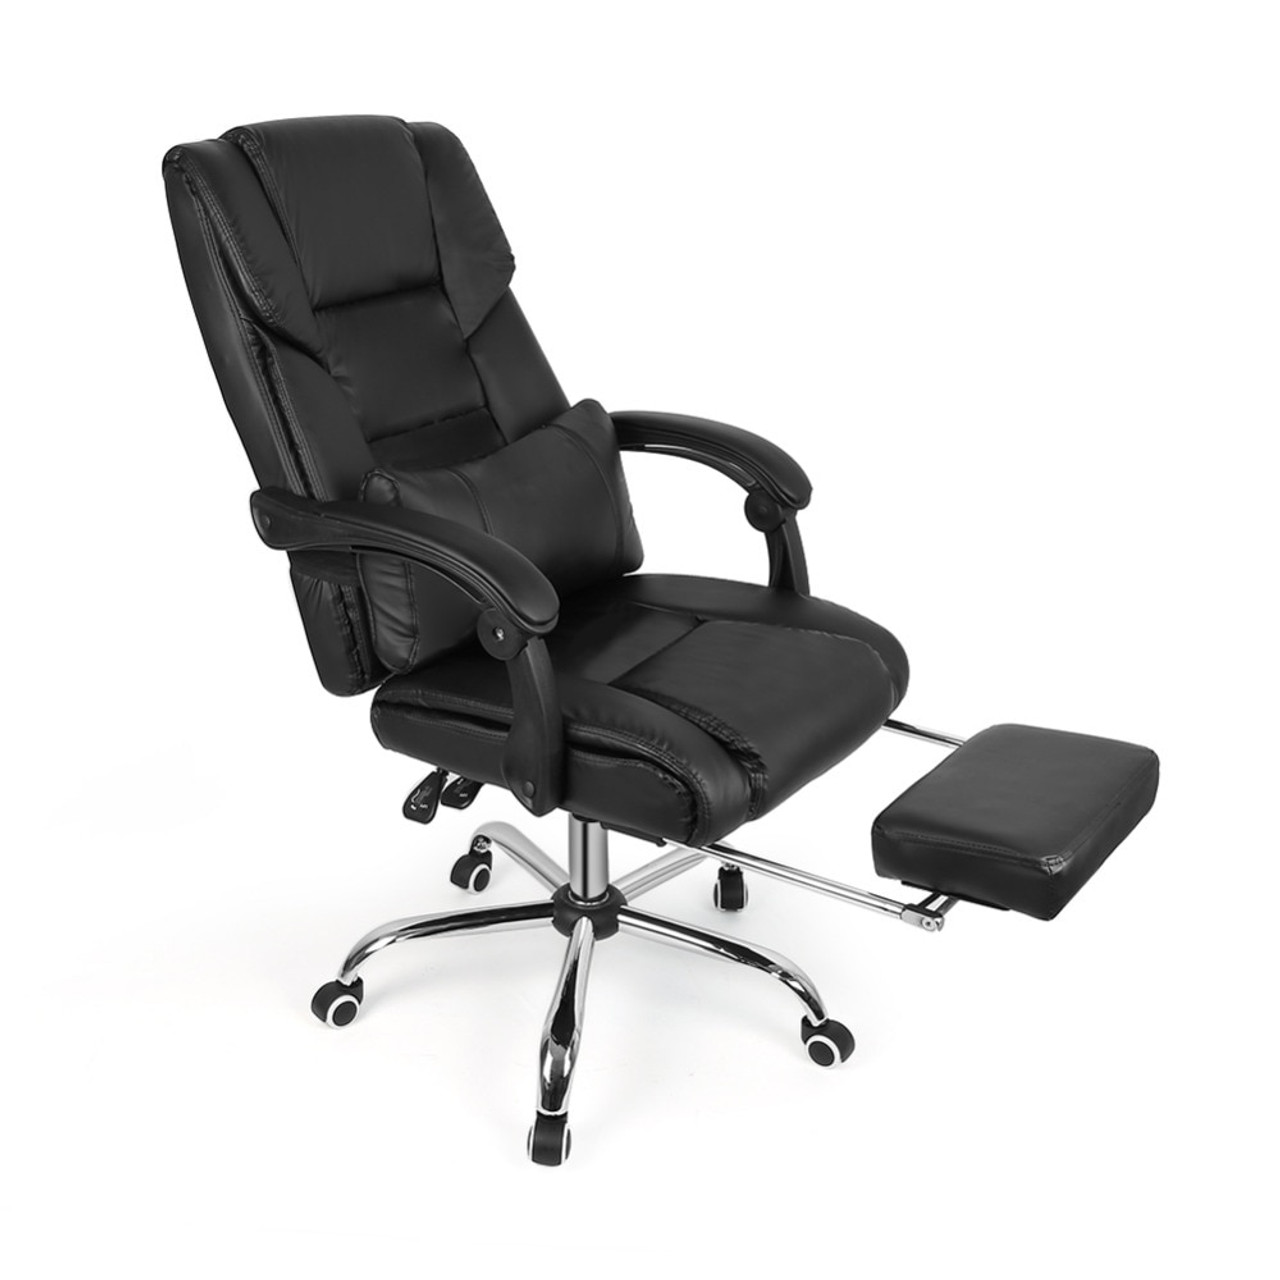 Design Lifting Chair Reclining Office Chair High Back Computer Napping Chair Leather Hwc Onshopdeals Com